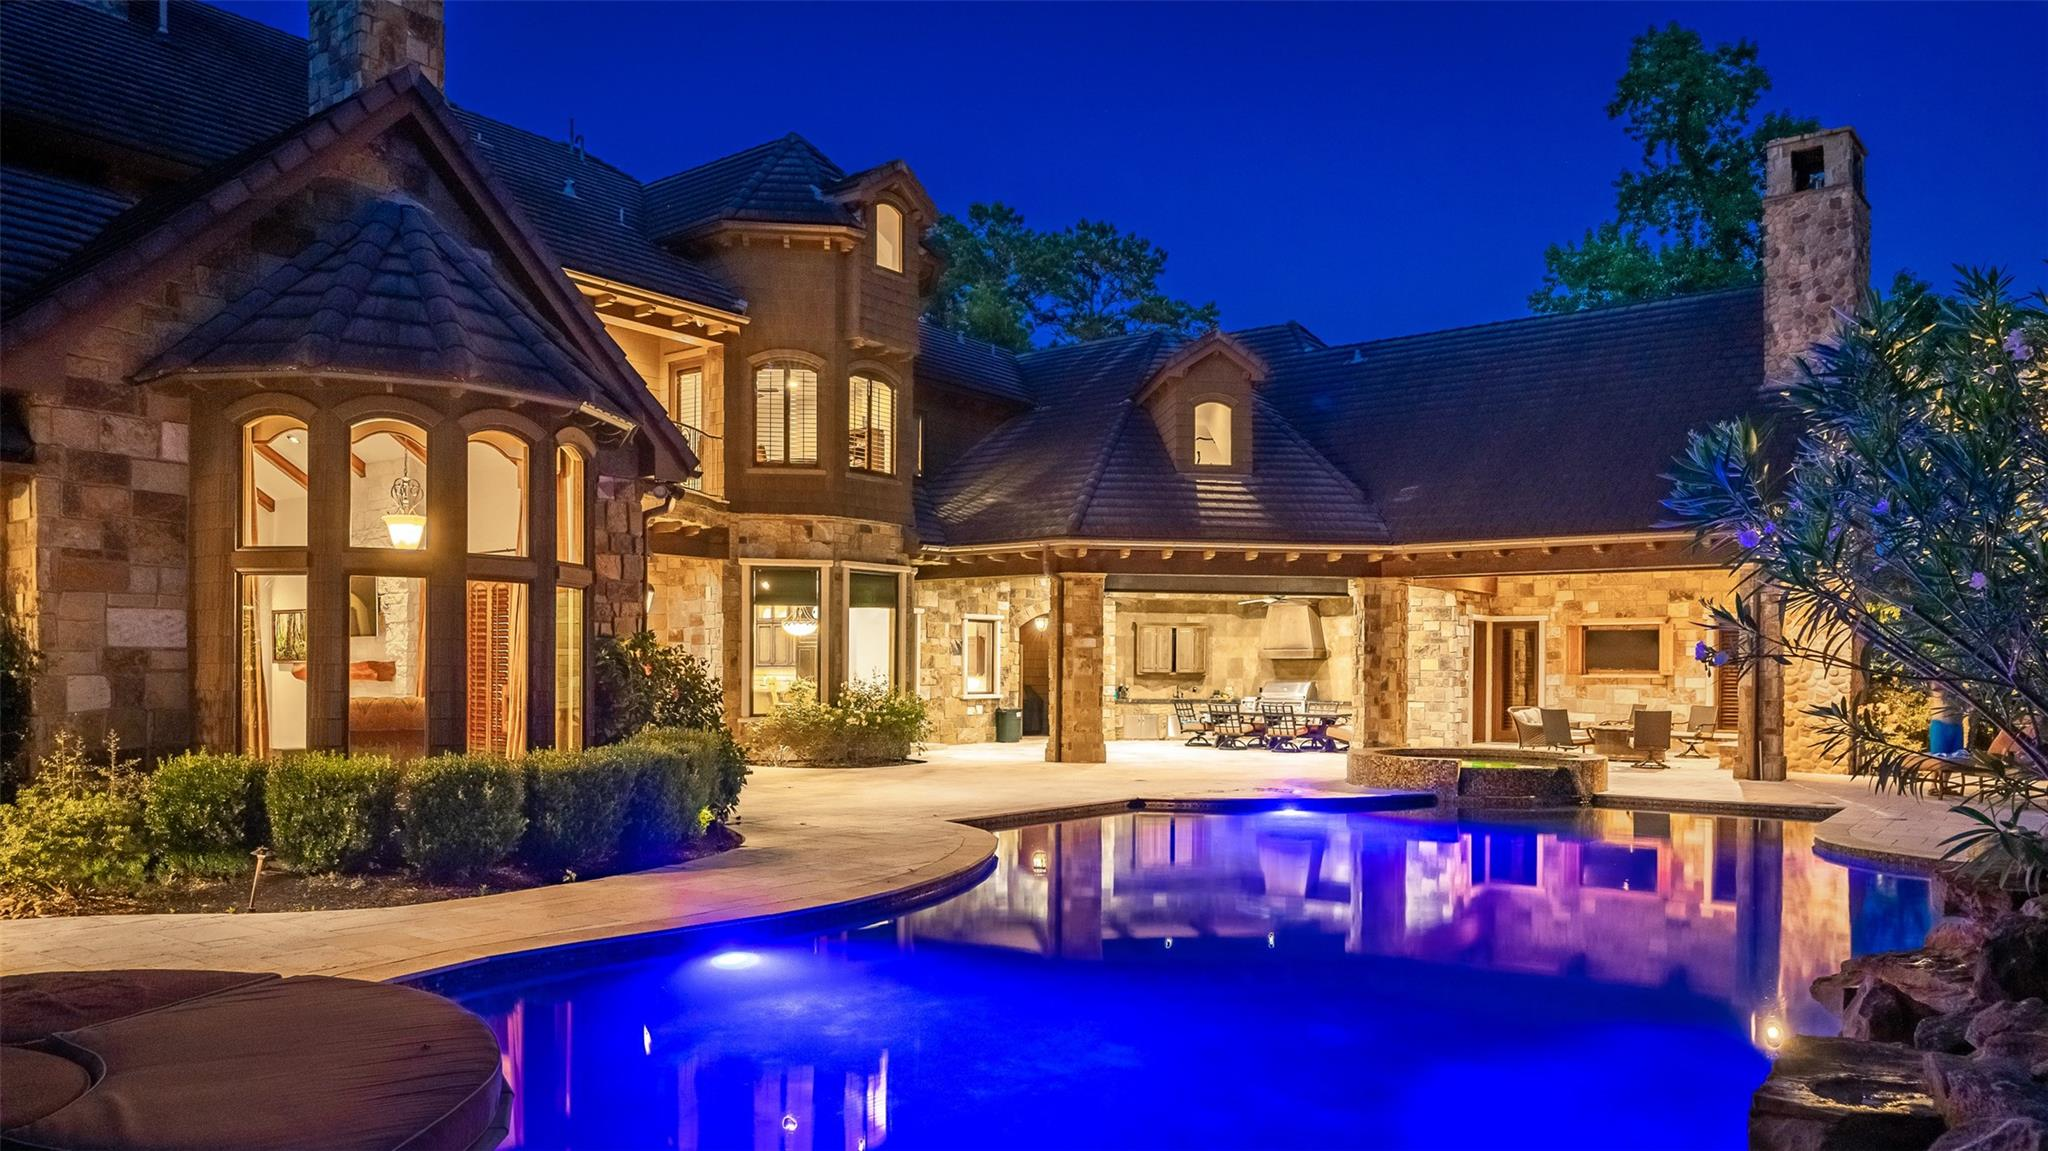 247 S Fazio Way Property Photo - The Woodlands, TX real estate listing